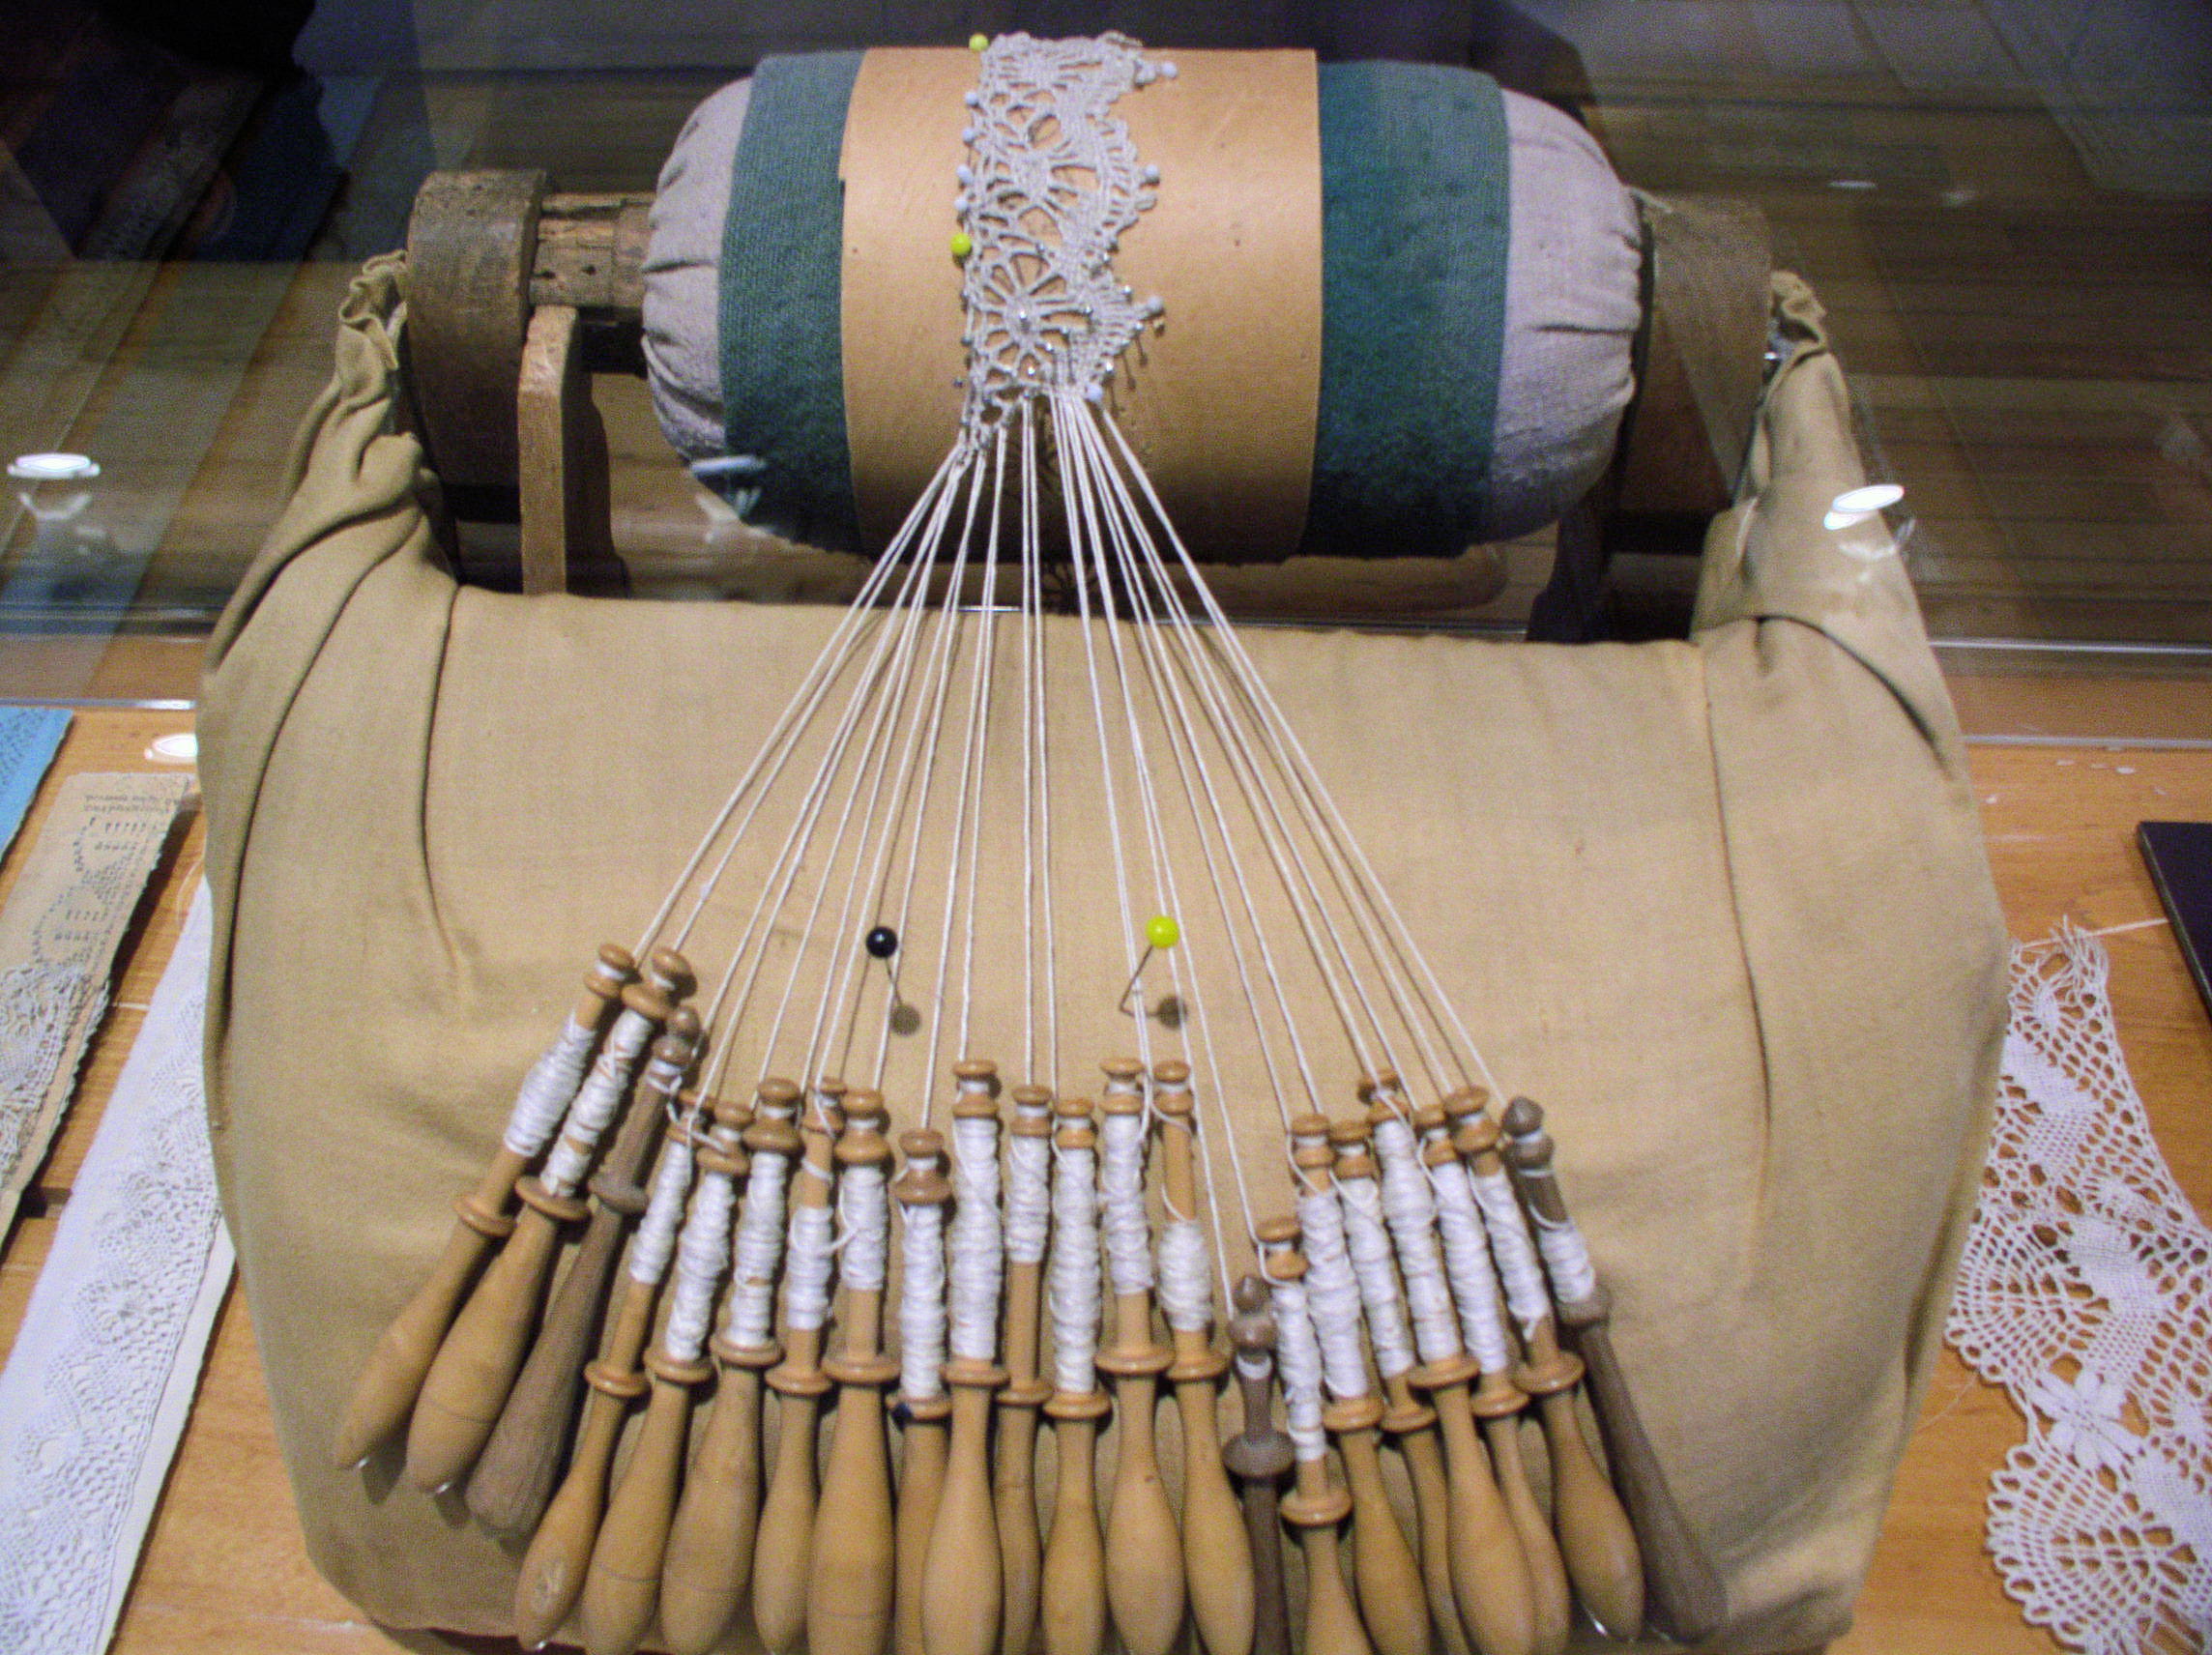 Creating bobbin lace